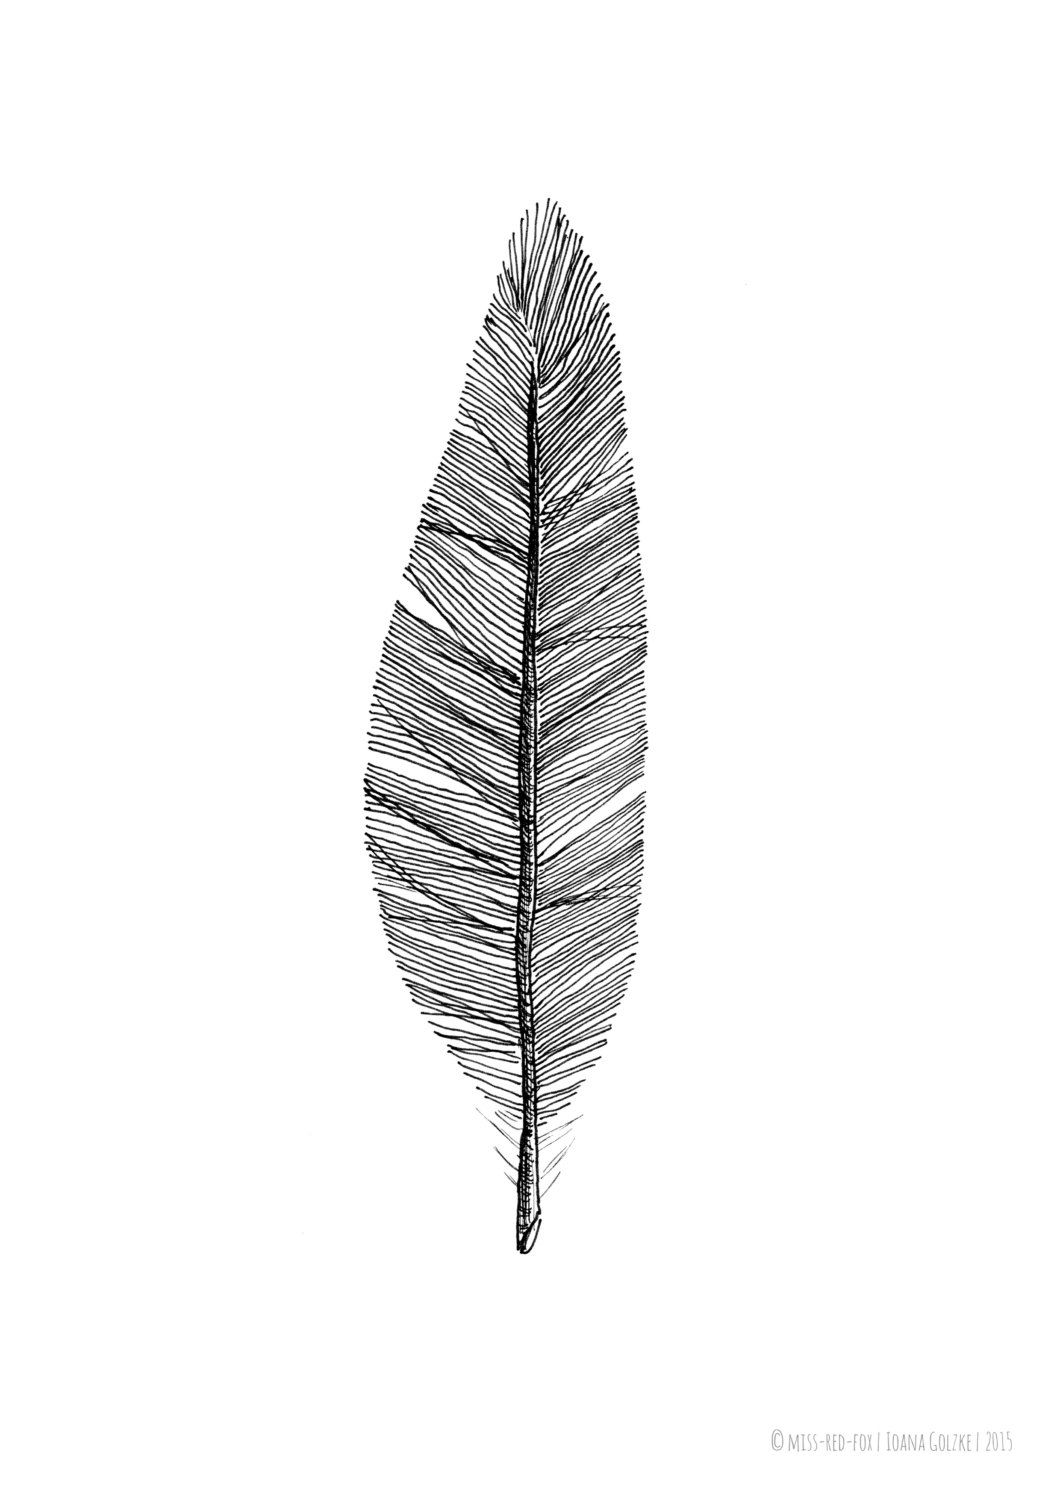 Foto Poster Drucken Feather Print Black And White Foto Feather Print